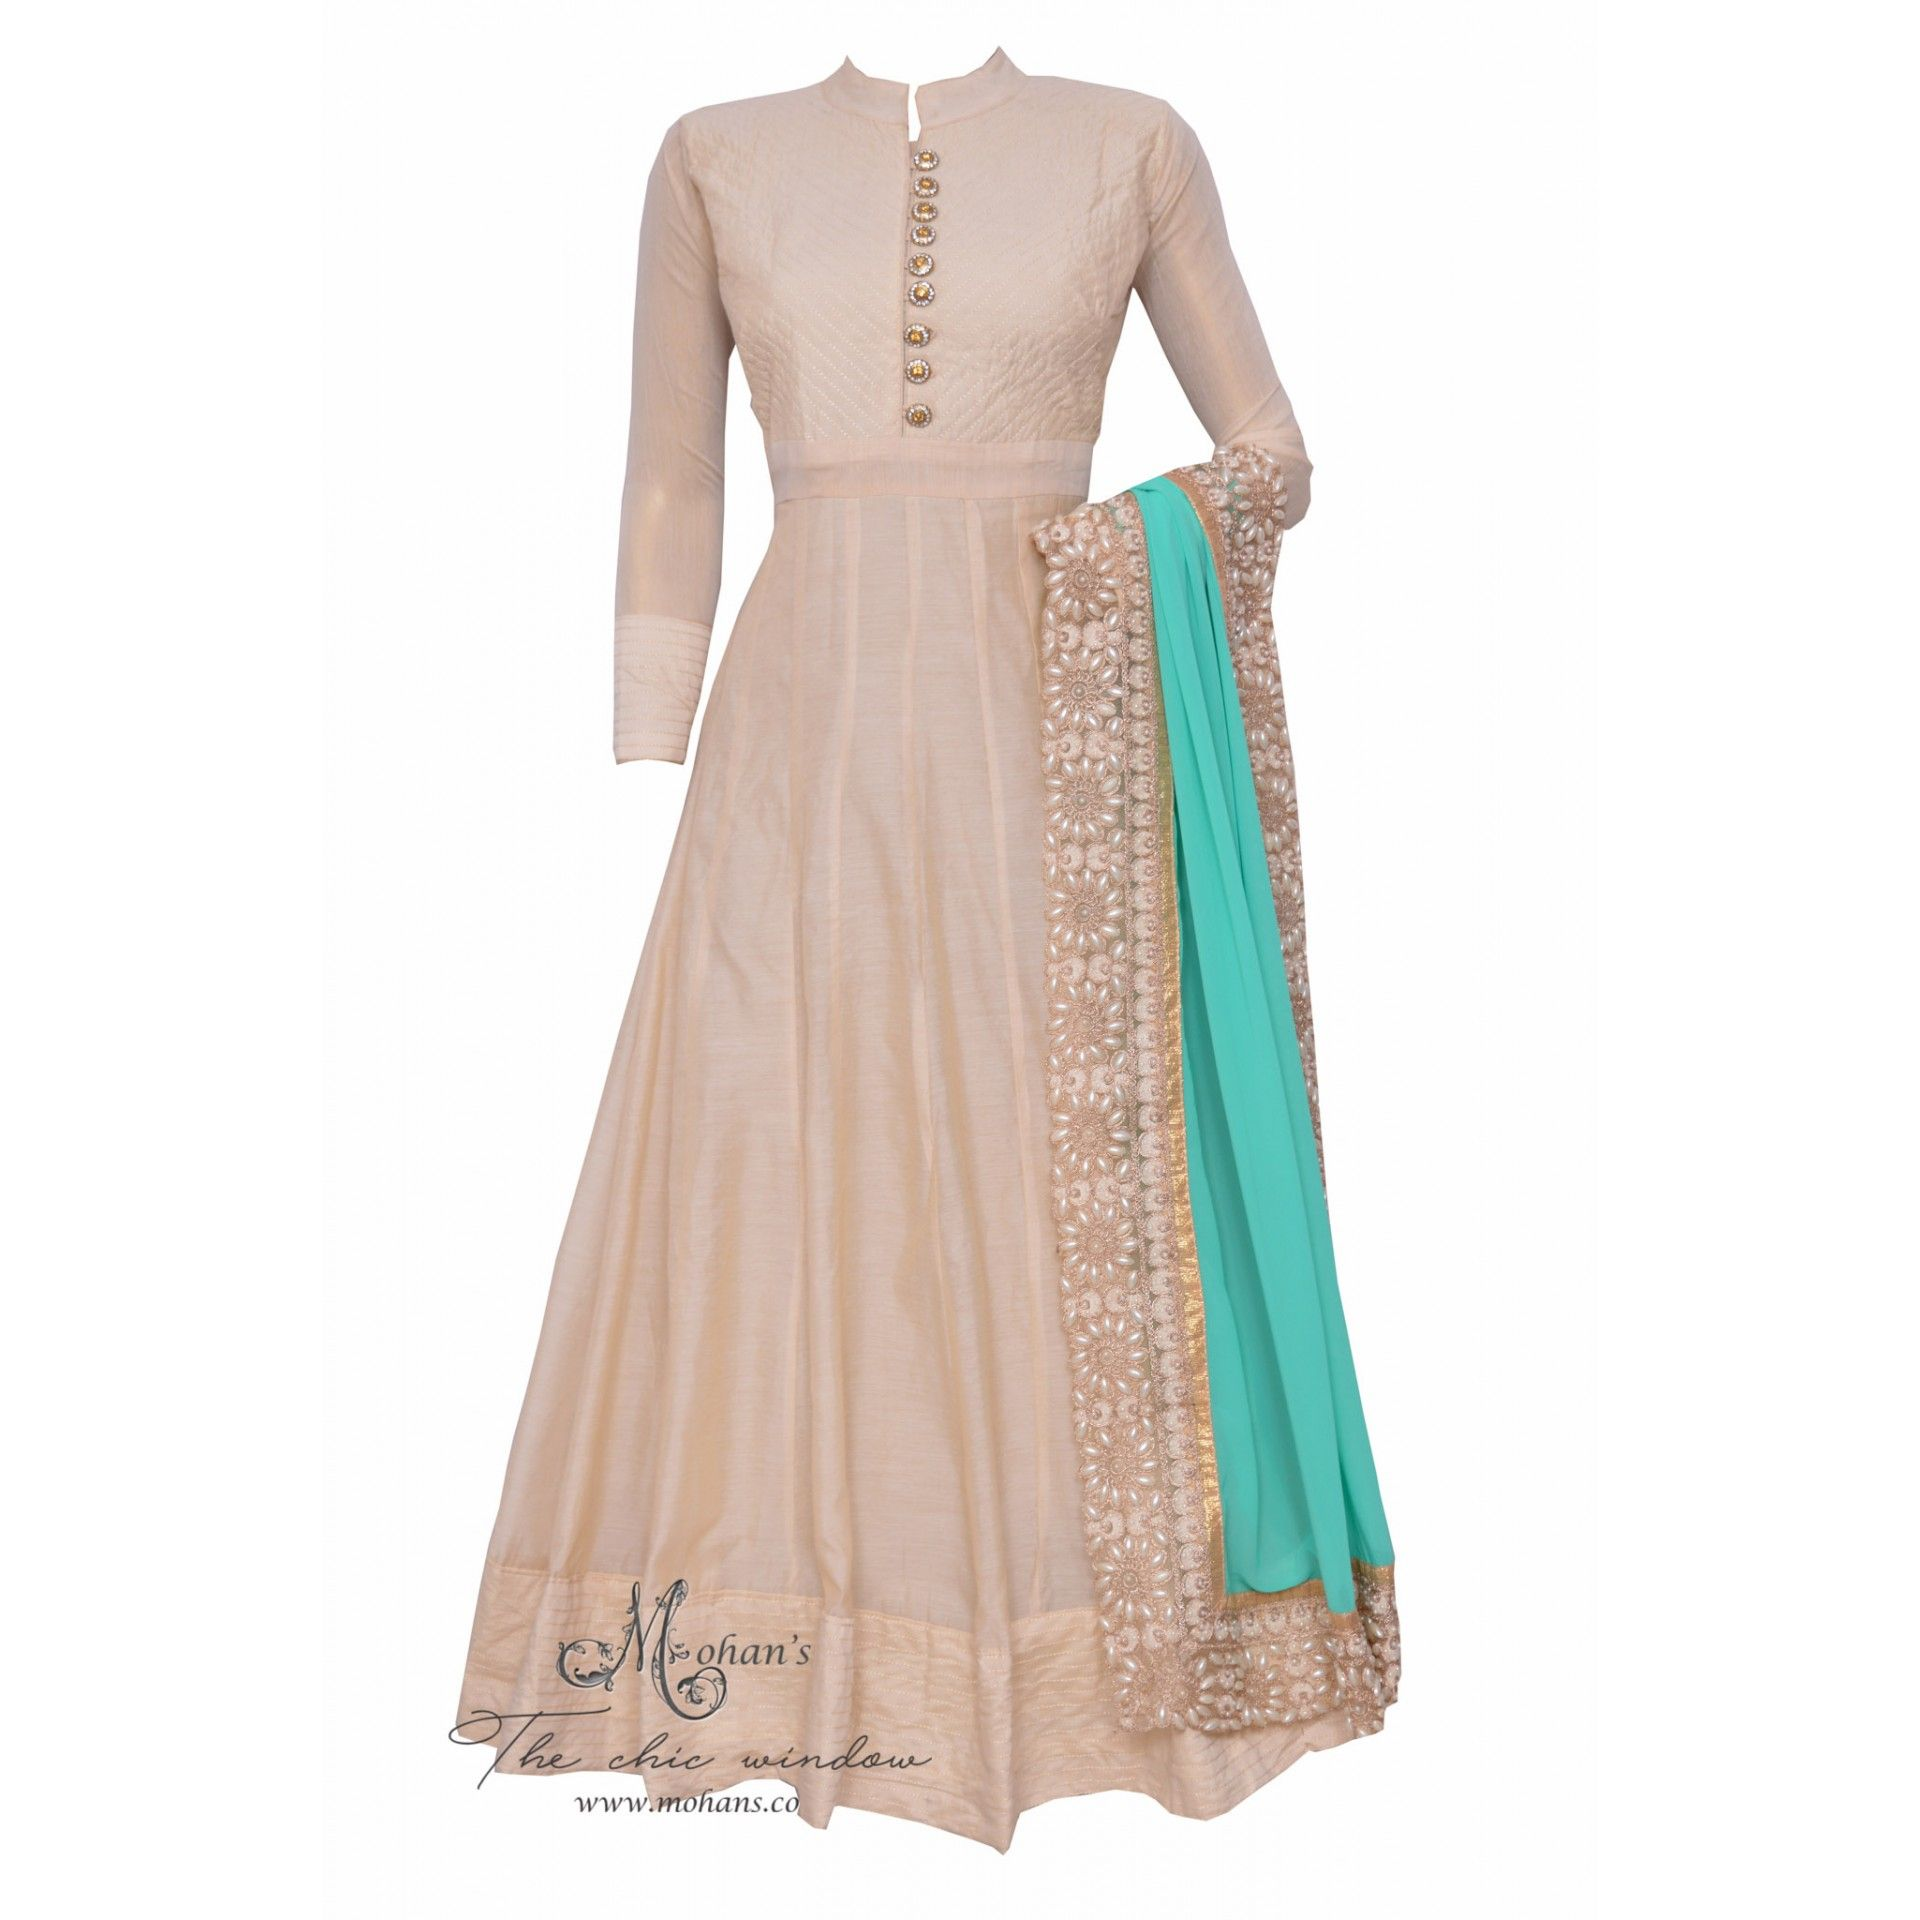 Serene off white anarkali complemented with aqua dupatta featuring in pearl work on borders-Mohan's the chic window